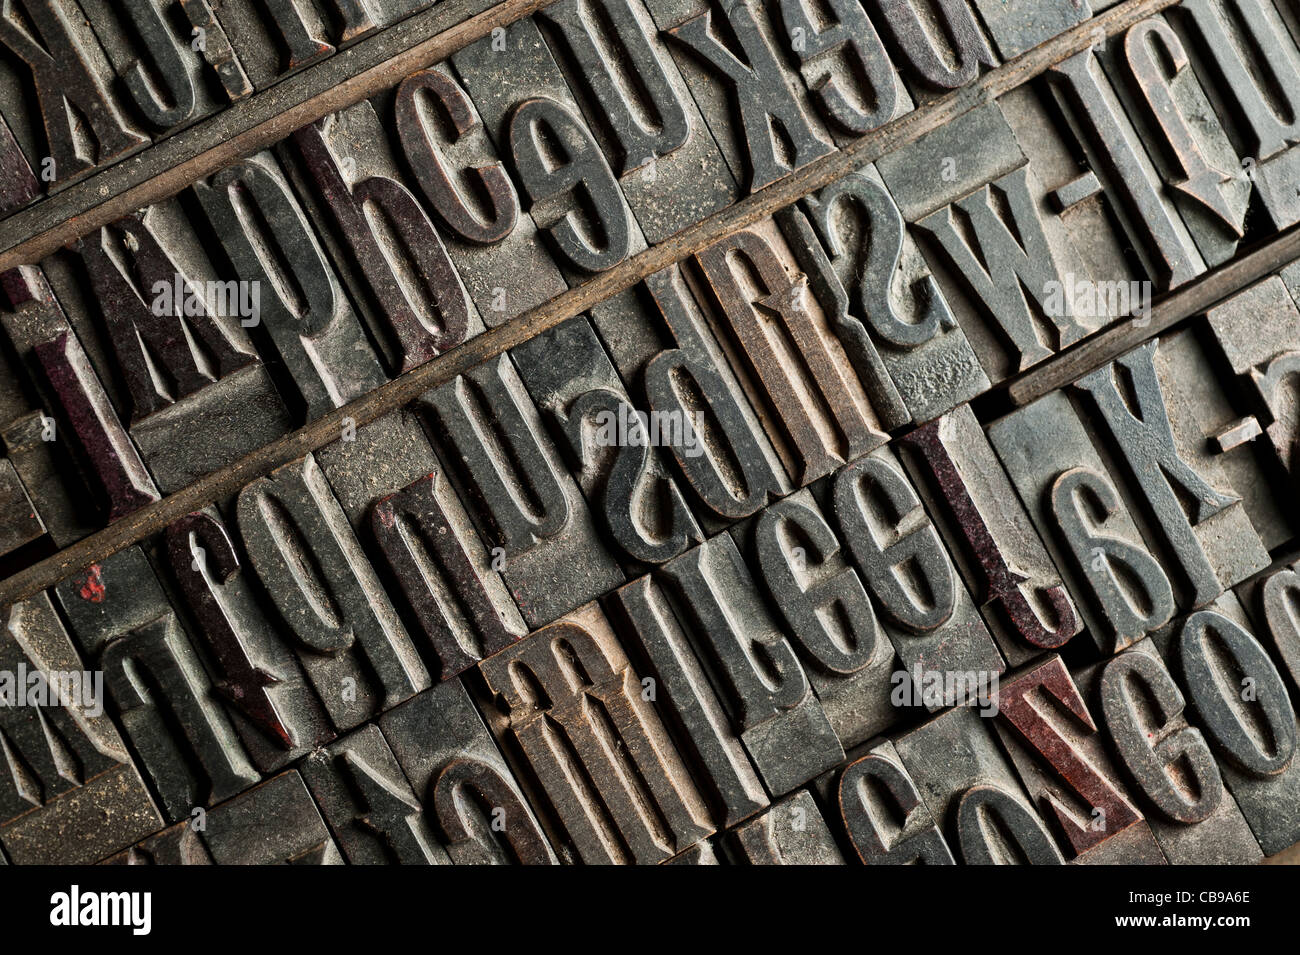 a tray of carved wooden letters, part of a letterpress set. - Stock Image